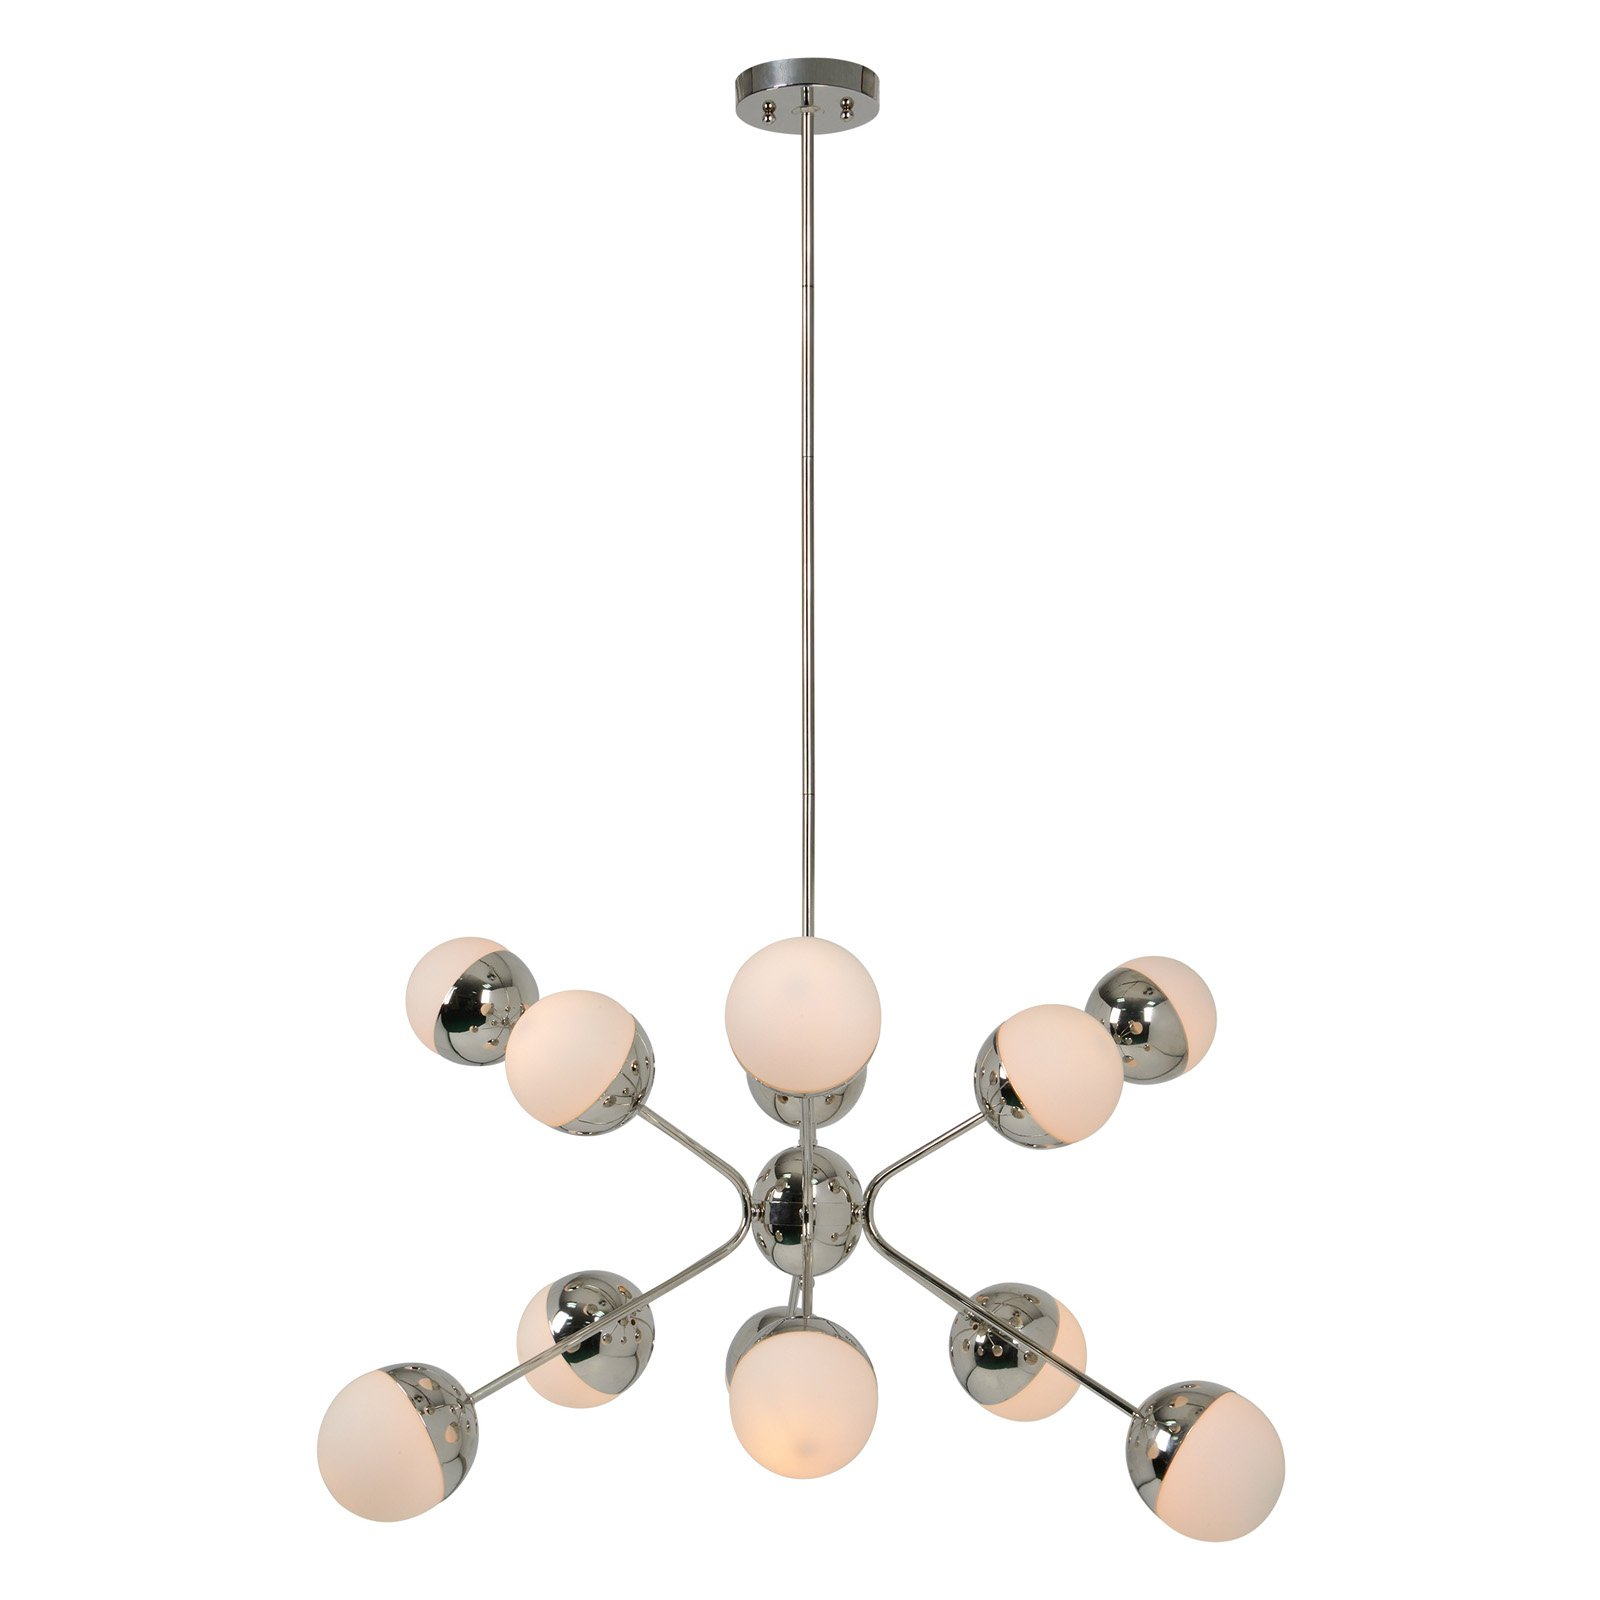 Ren Wil Krotos Lpc4077 Chandelier | Products In 2019 Within Vroman 12 Light Sputnik Chandeliers (Gallery 23 of 30)